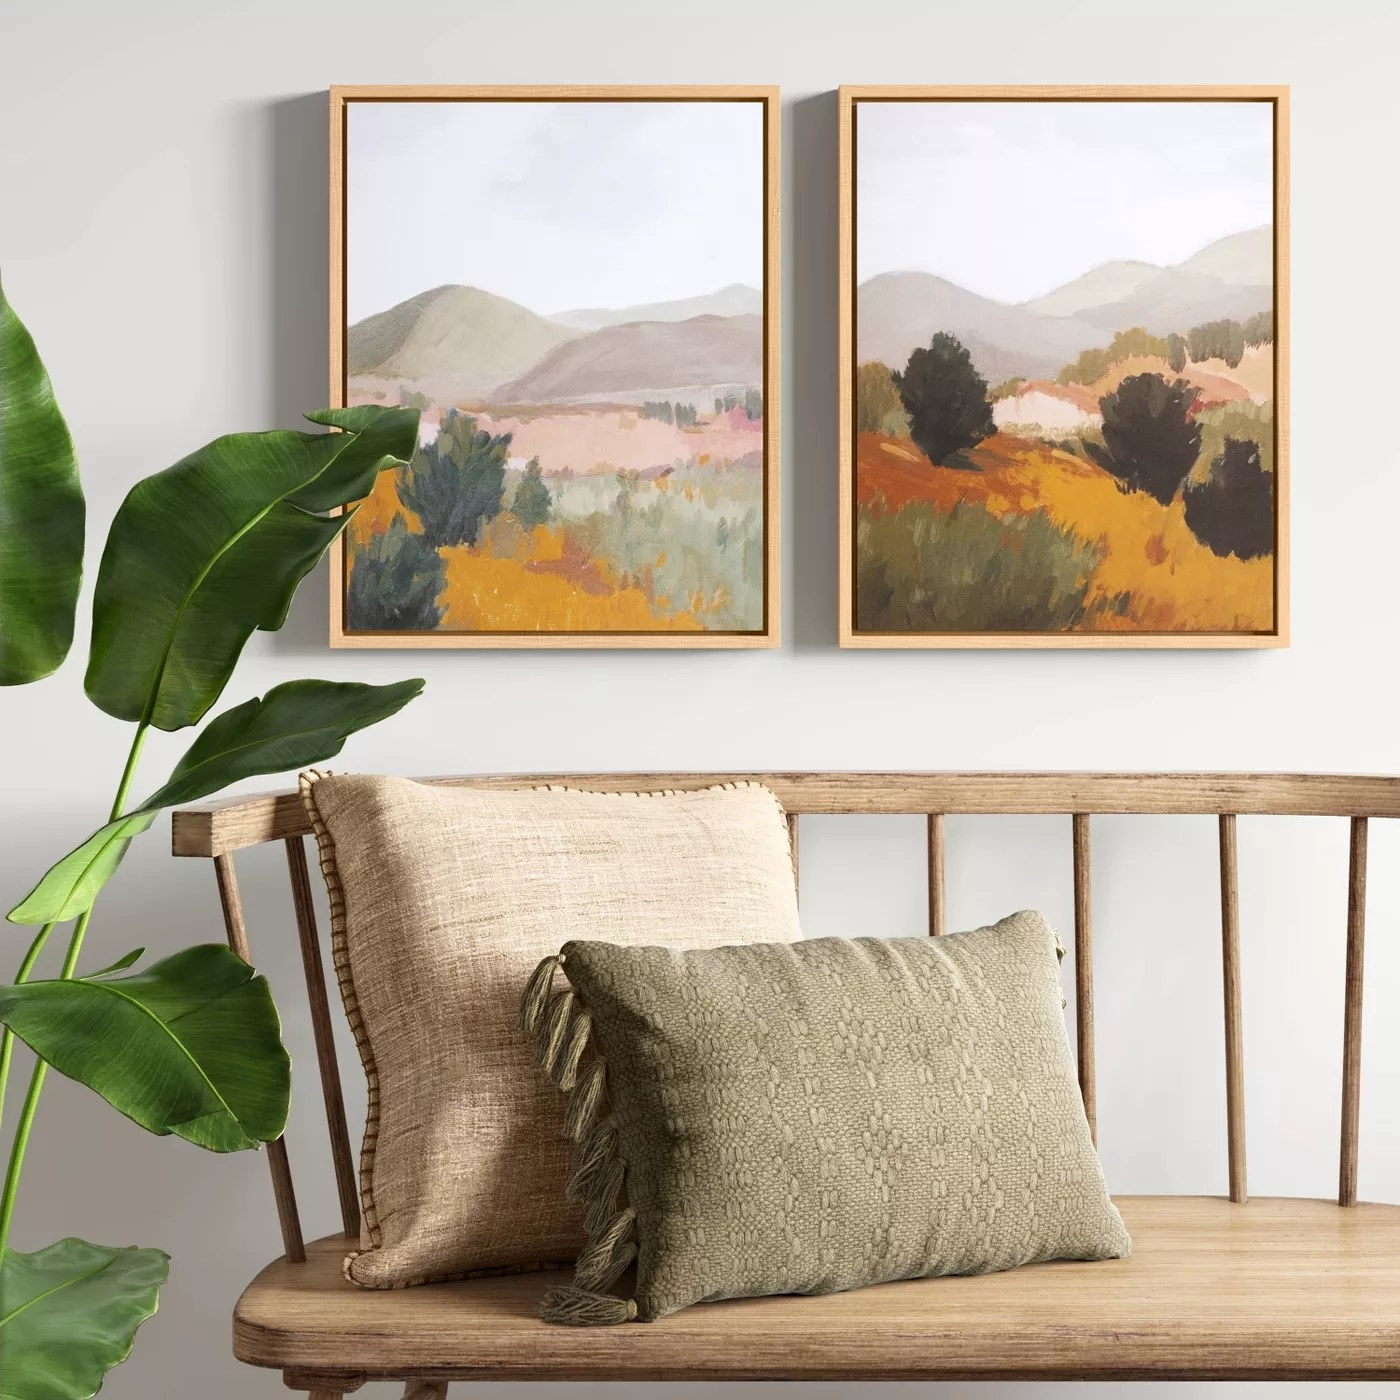 The paintings hanging next to each other on a wall